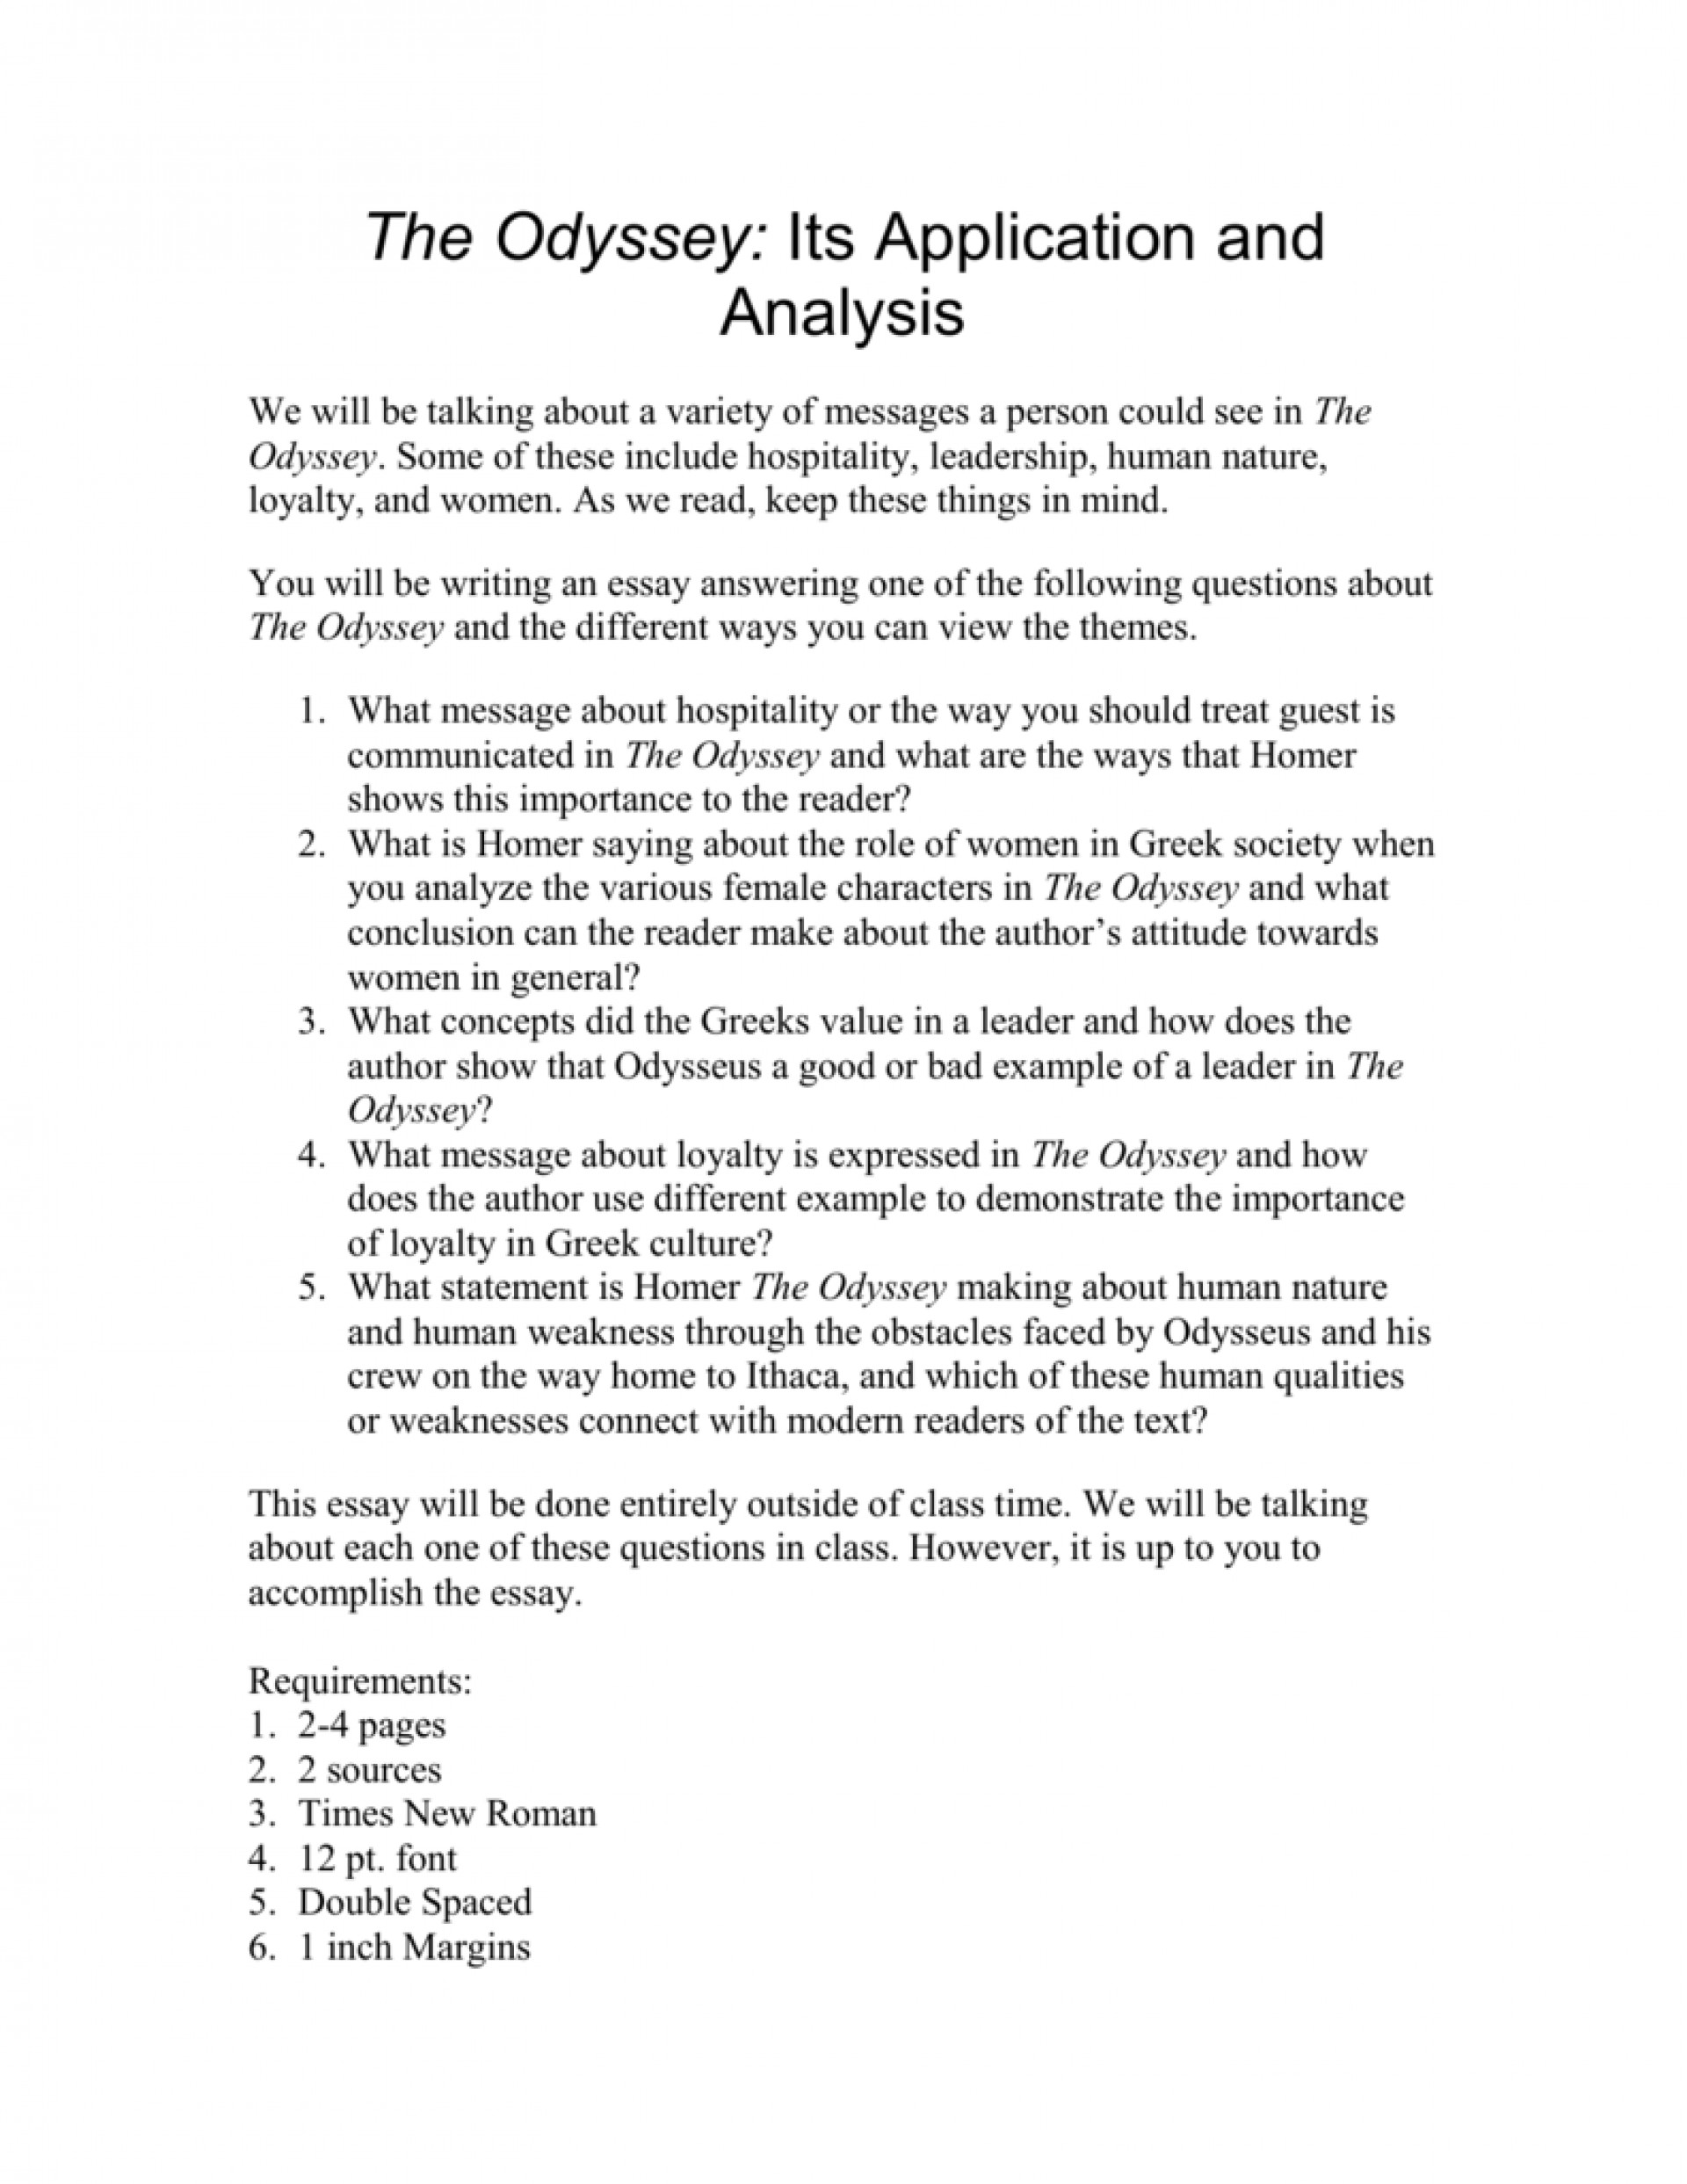 009 Essay Example Odyssey Topics 008004991 1 Amazing Hero Prompt 1920